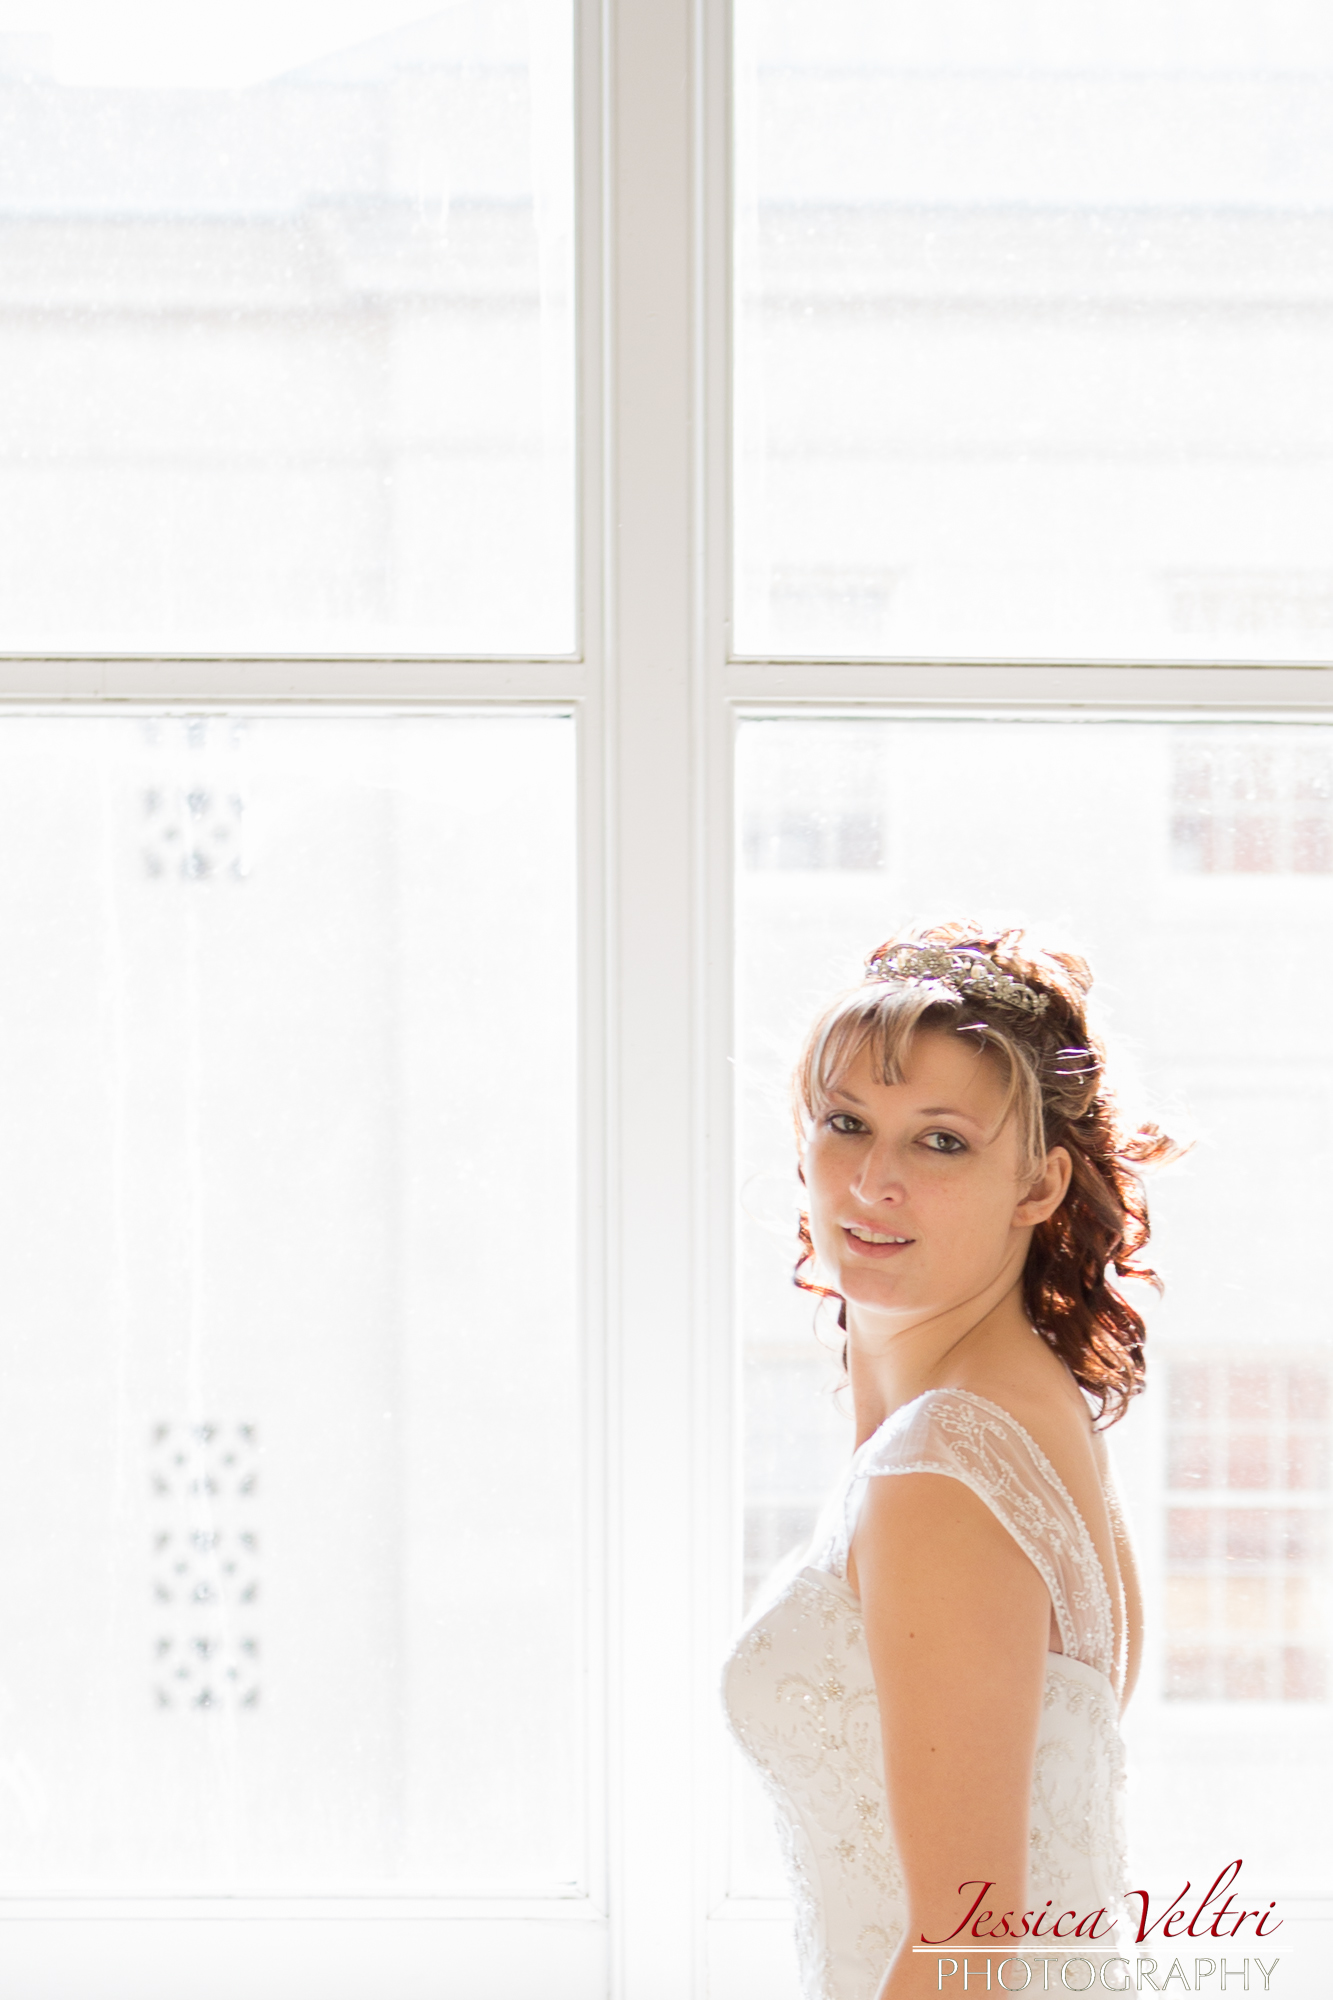 Washington D.C. Wedding Photography Jessica Veltri